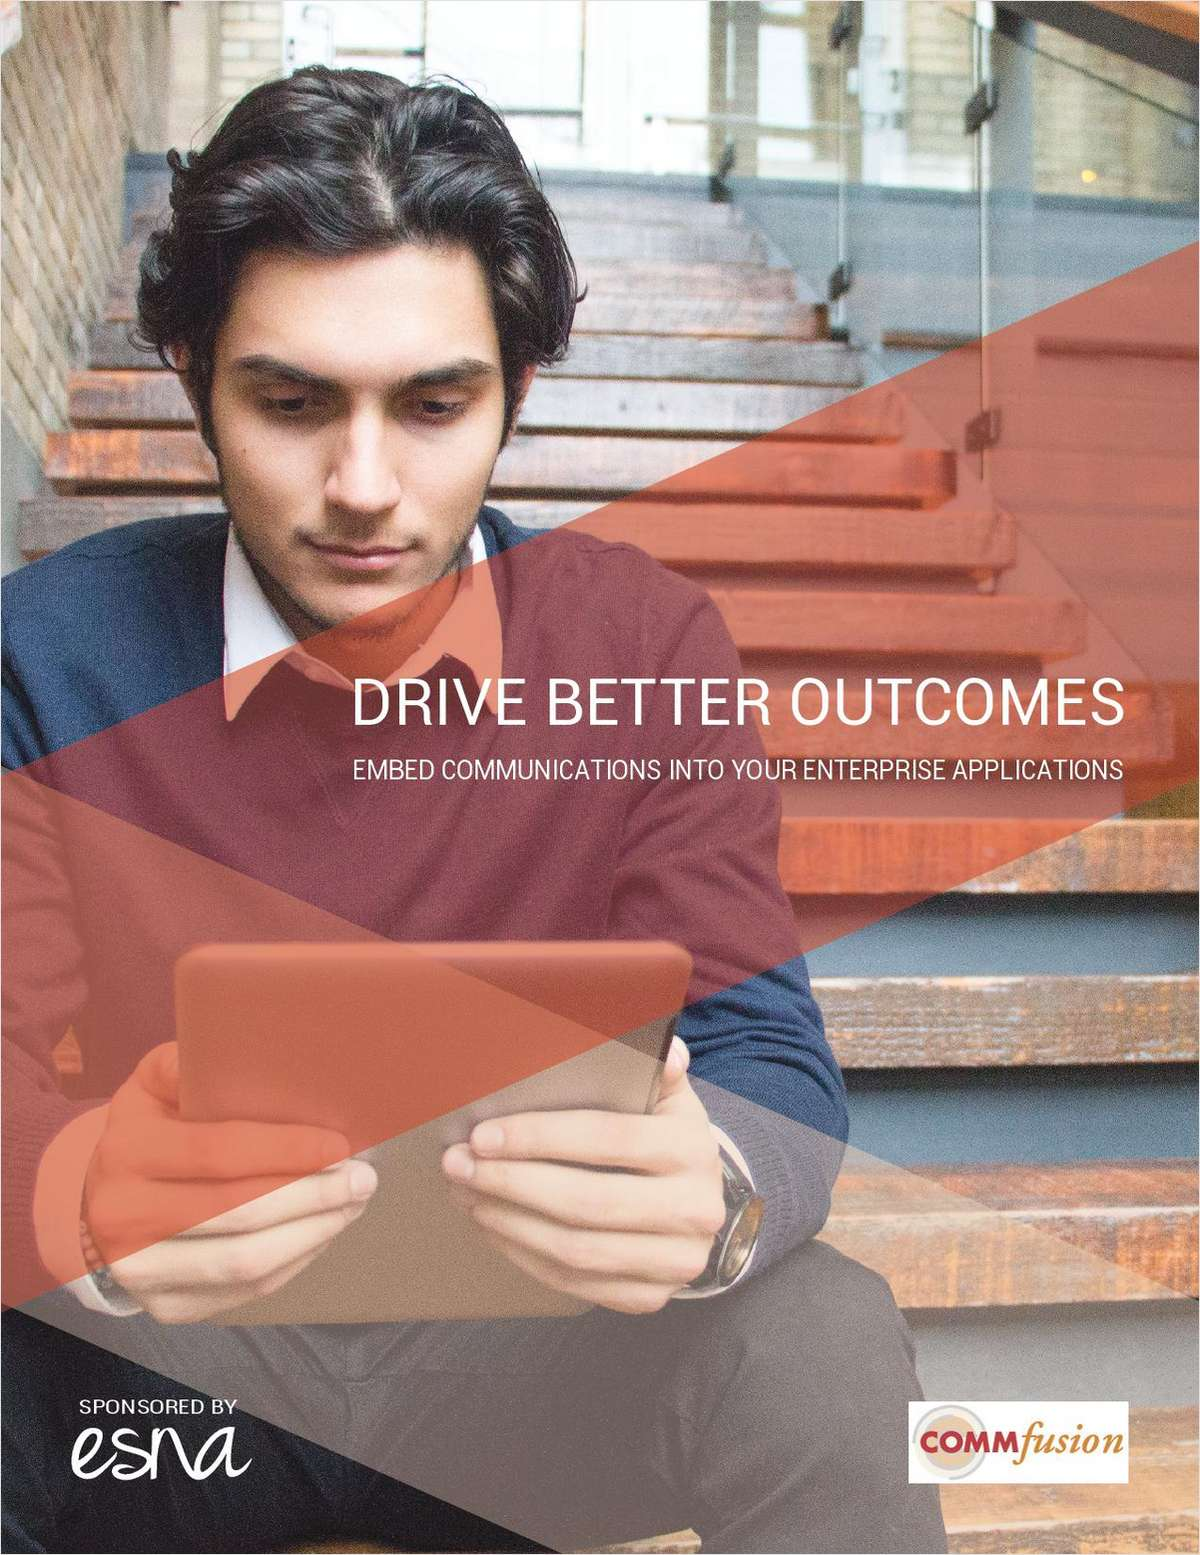 Drive Better Business Outcomes with Embedded Communications